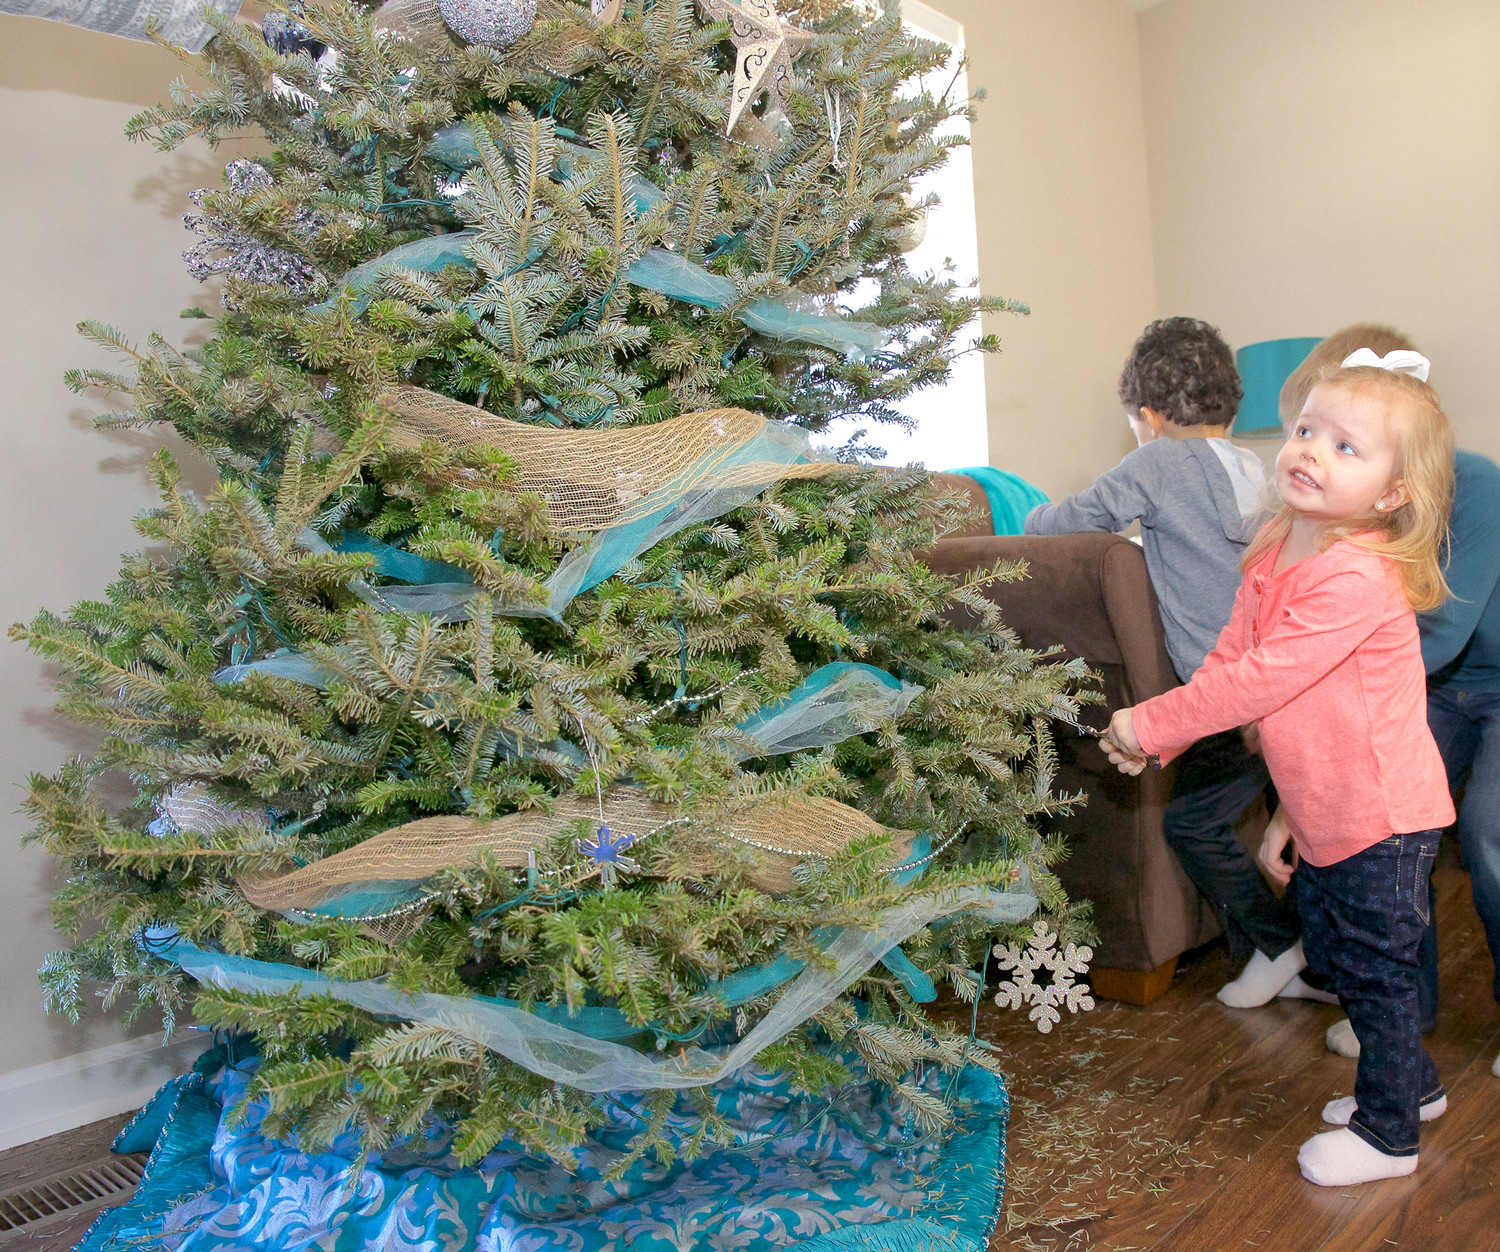 LITTLE CORALEE BAUM surveys the family tree for any remaining Christmas ornaments to be removed before this tree can be delivered to a Chipping of the Green collection site where it will be hauled away for shredding, and converted into an aromatic mulch. The mulch is given away free of charge.